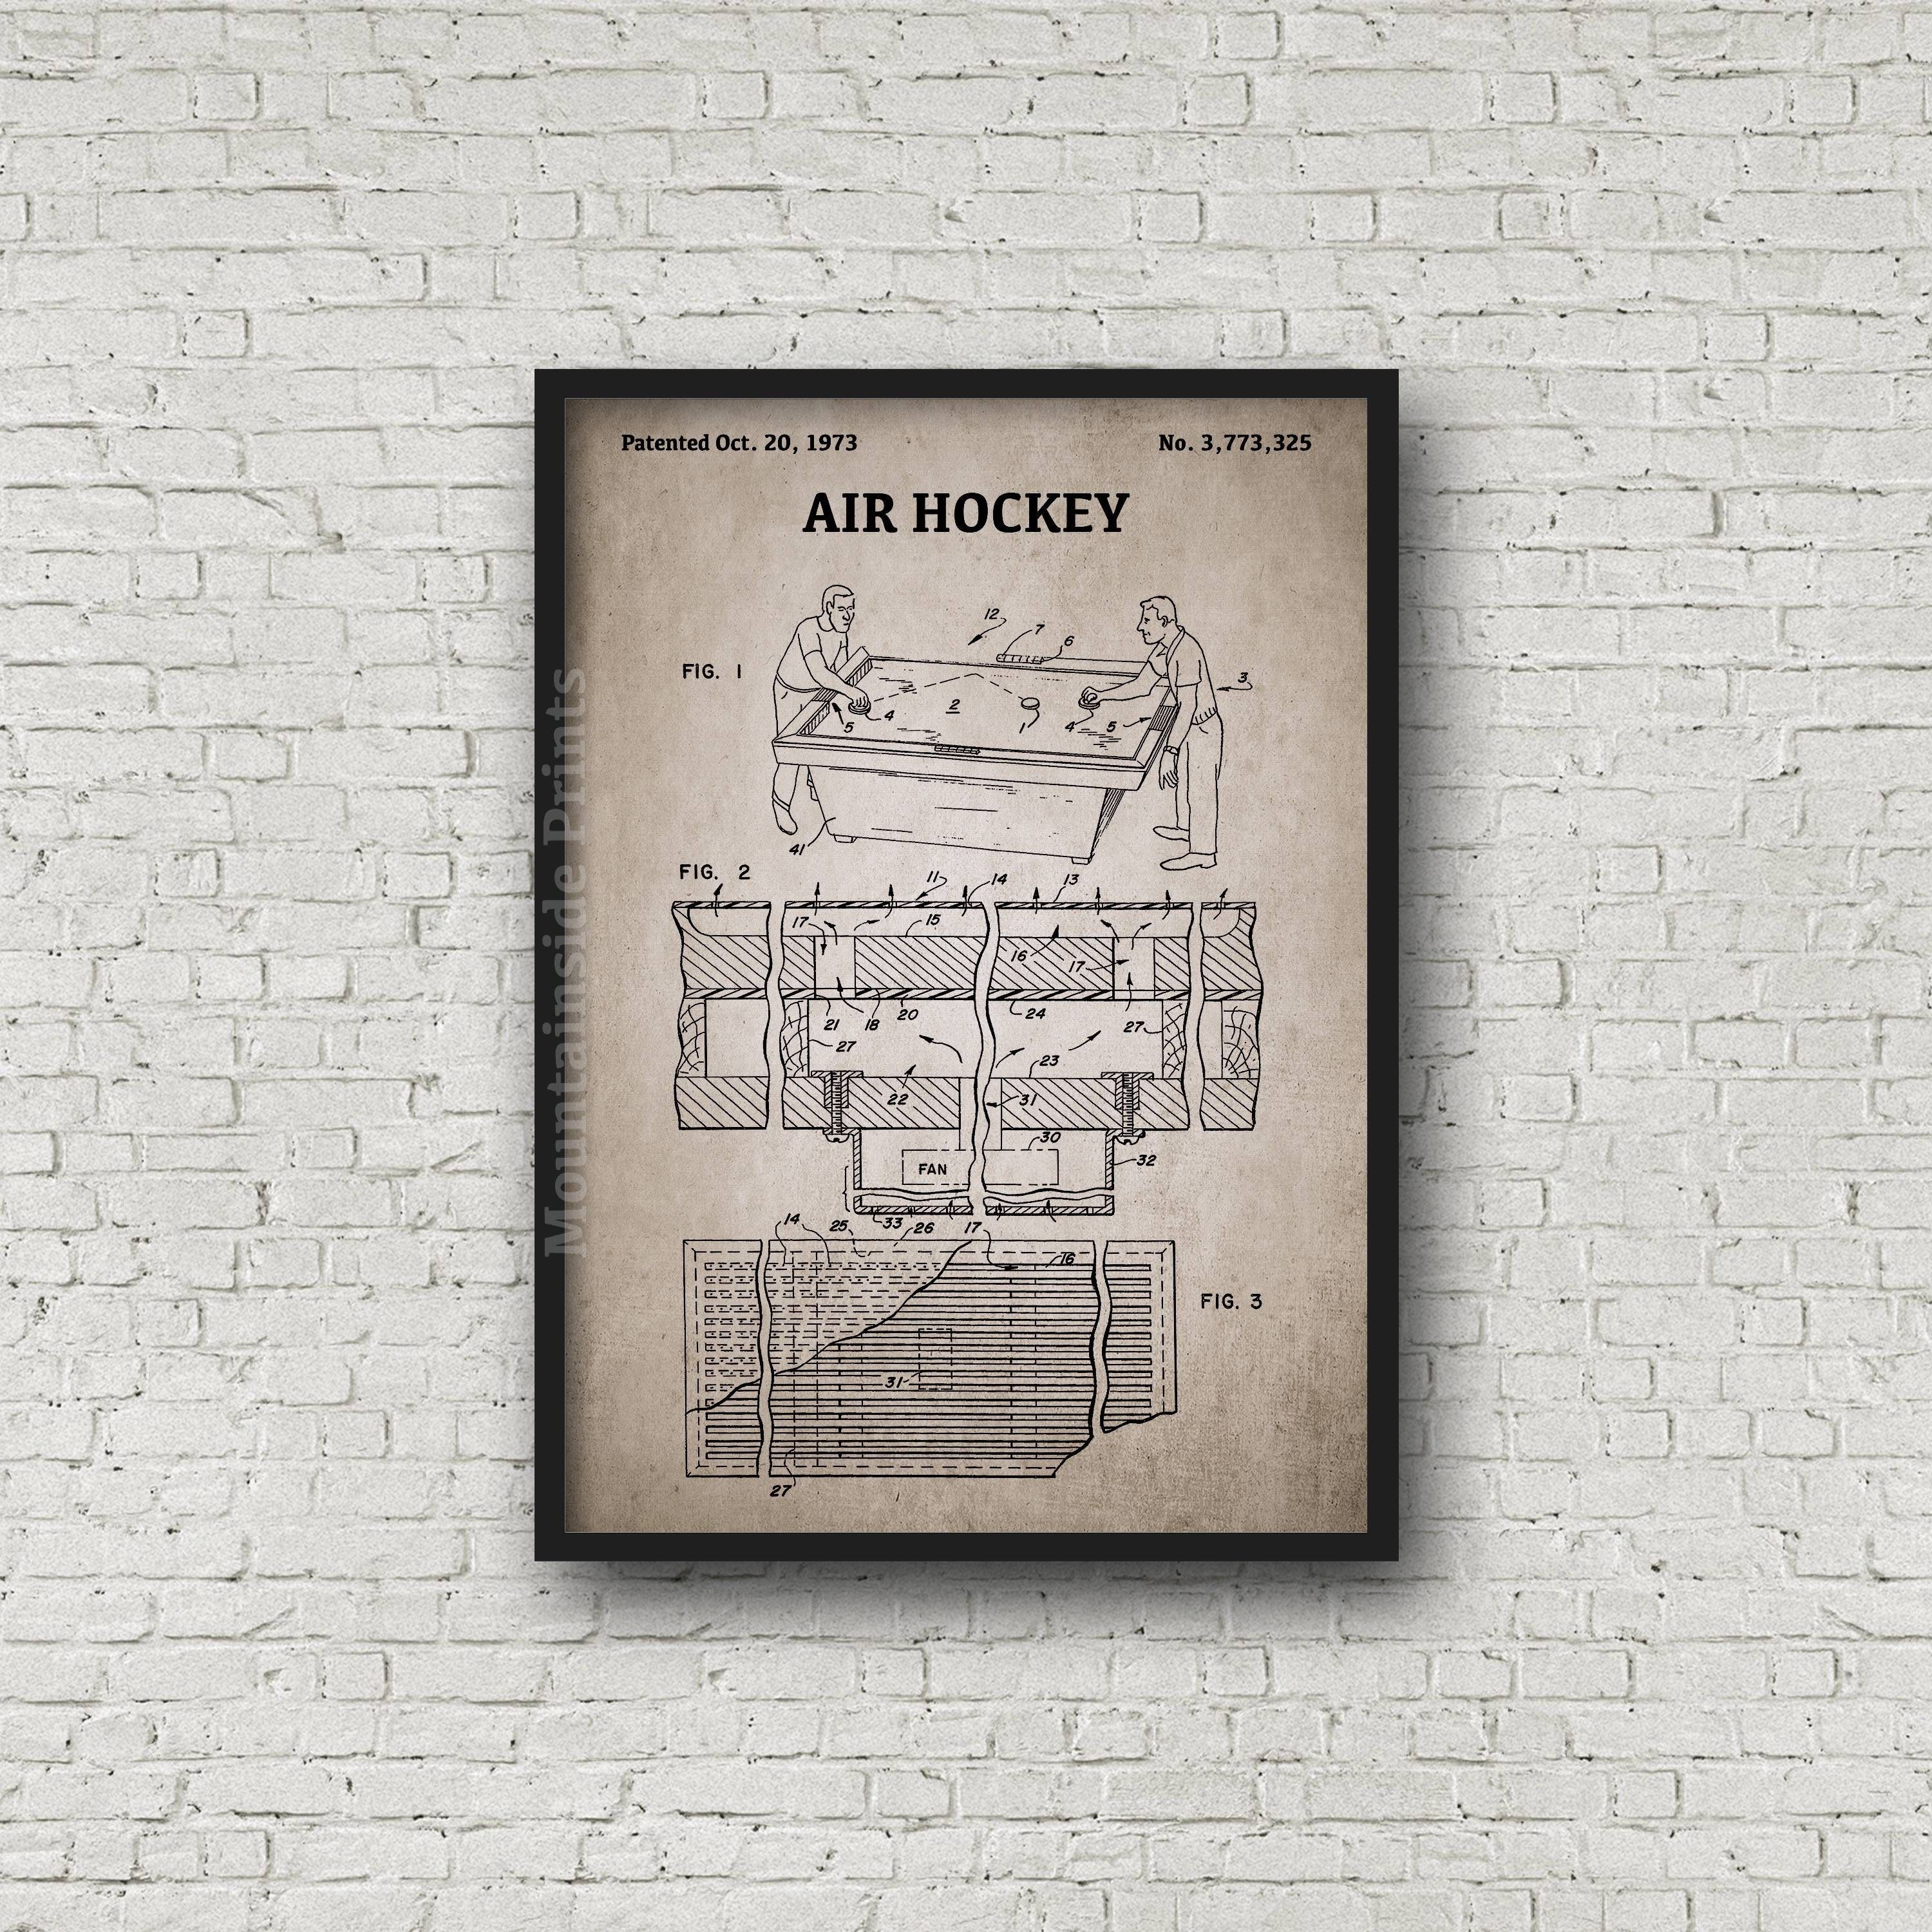 Air hockey patent print air hockey patent poster blueprint art air hockey patent print air hockey patent poster blueprint art vintage game gift blueprint poster patent wall art game room art malvernweather Images